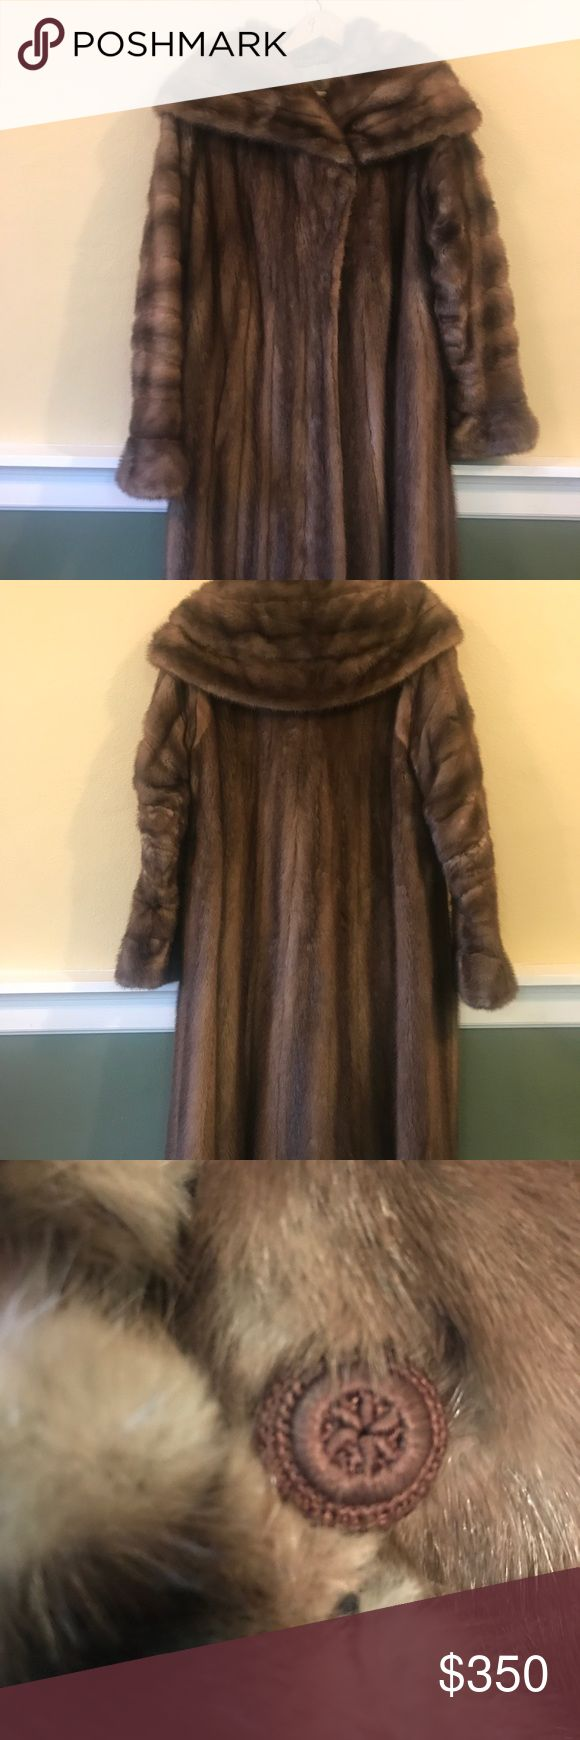 Vtg Mink Coat Sz-M by David L. Norton Holland, MI Vtg Mink Coat Sz-M by David L. Norton Holland, MI. A few fur separation spots typical for an antique fur. As Is. David L. Norton Holland, MI Jackets & Coats